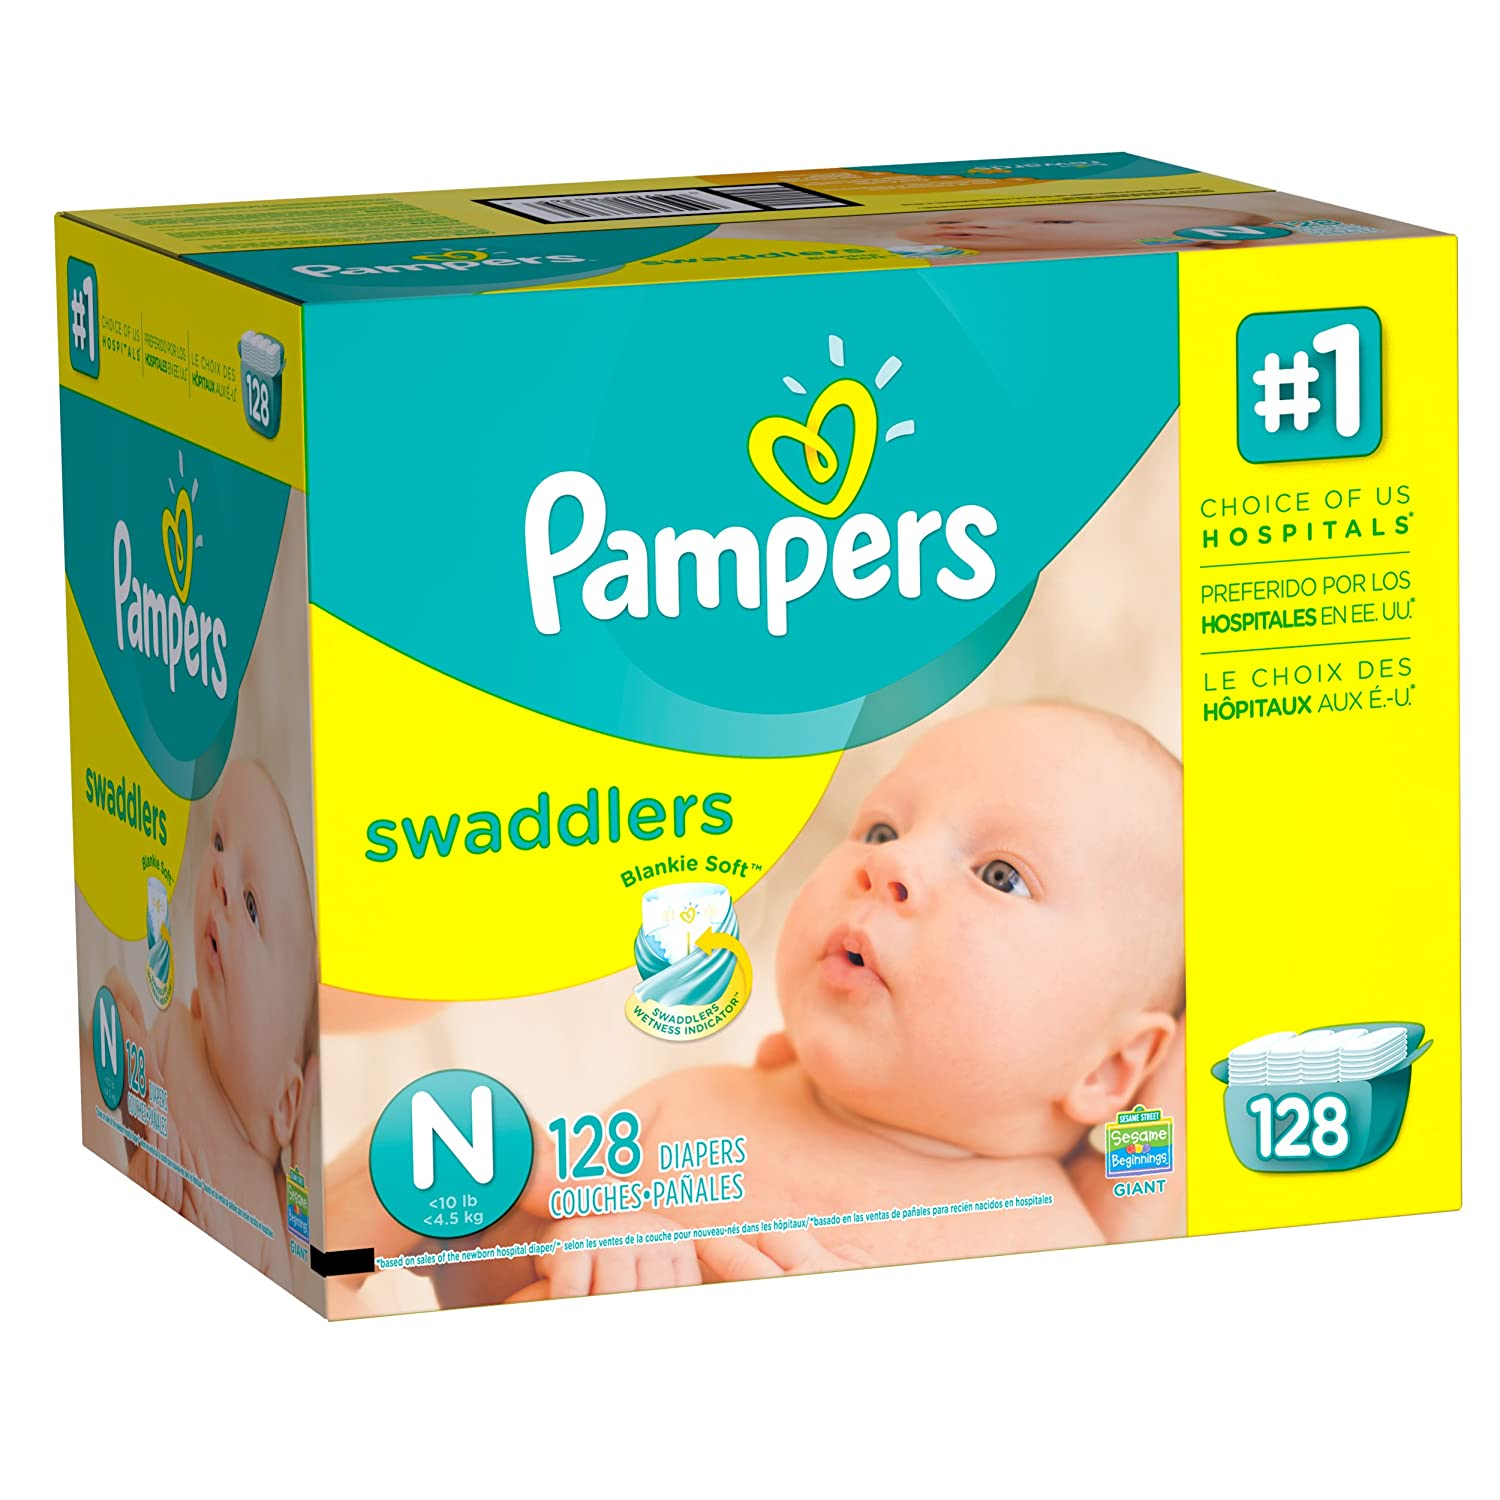 Pampers Swadlers size N P&G NA